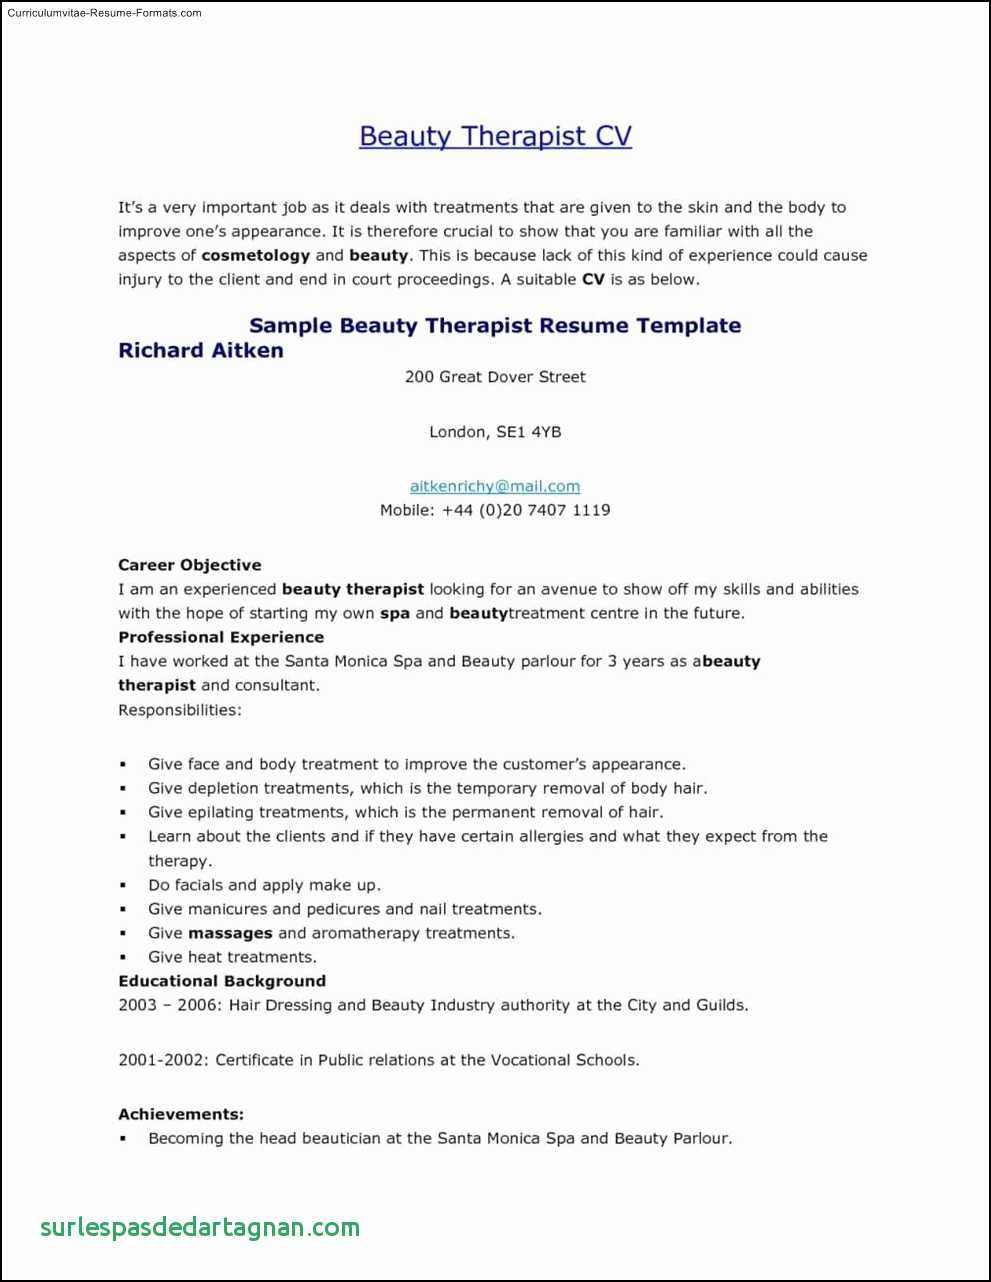 cv template youth central resume format good examples therapist beauty parlour retired Resume Beauty Parlour Resume Format